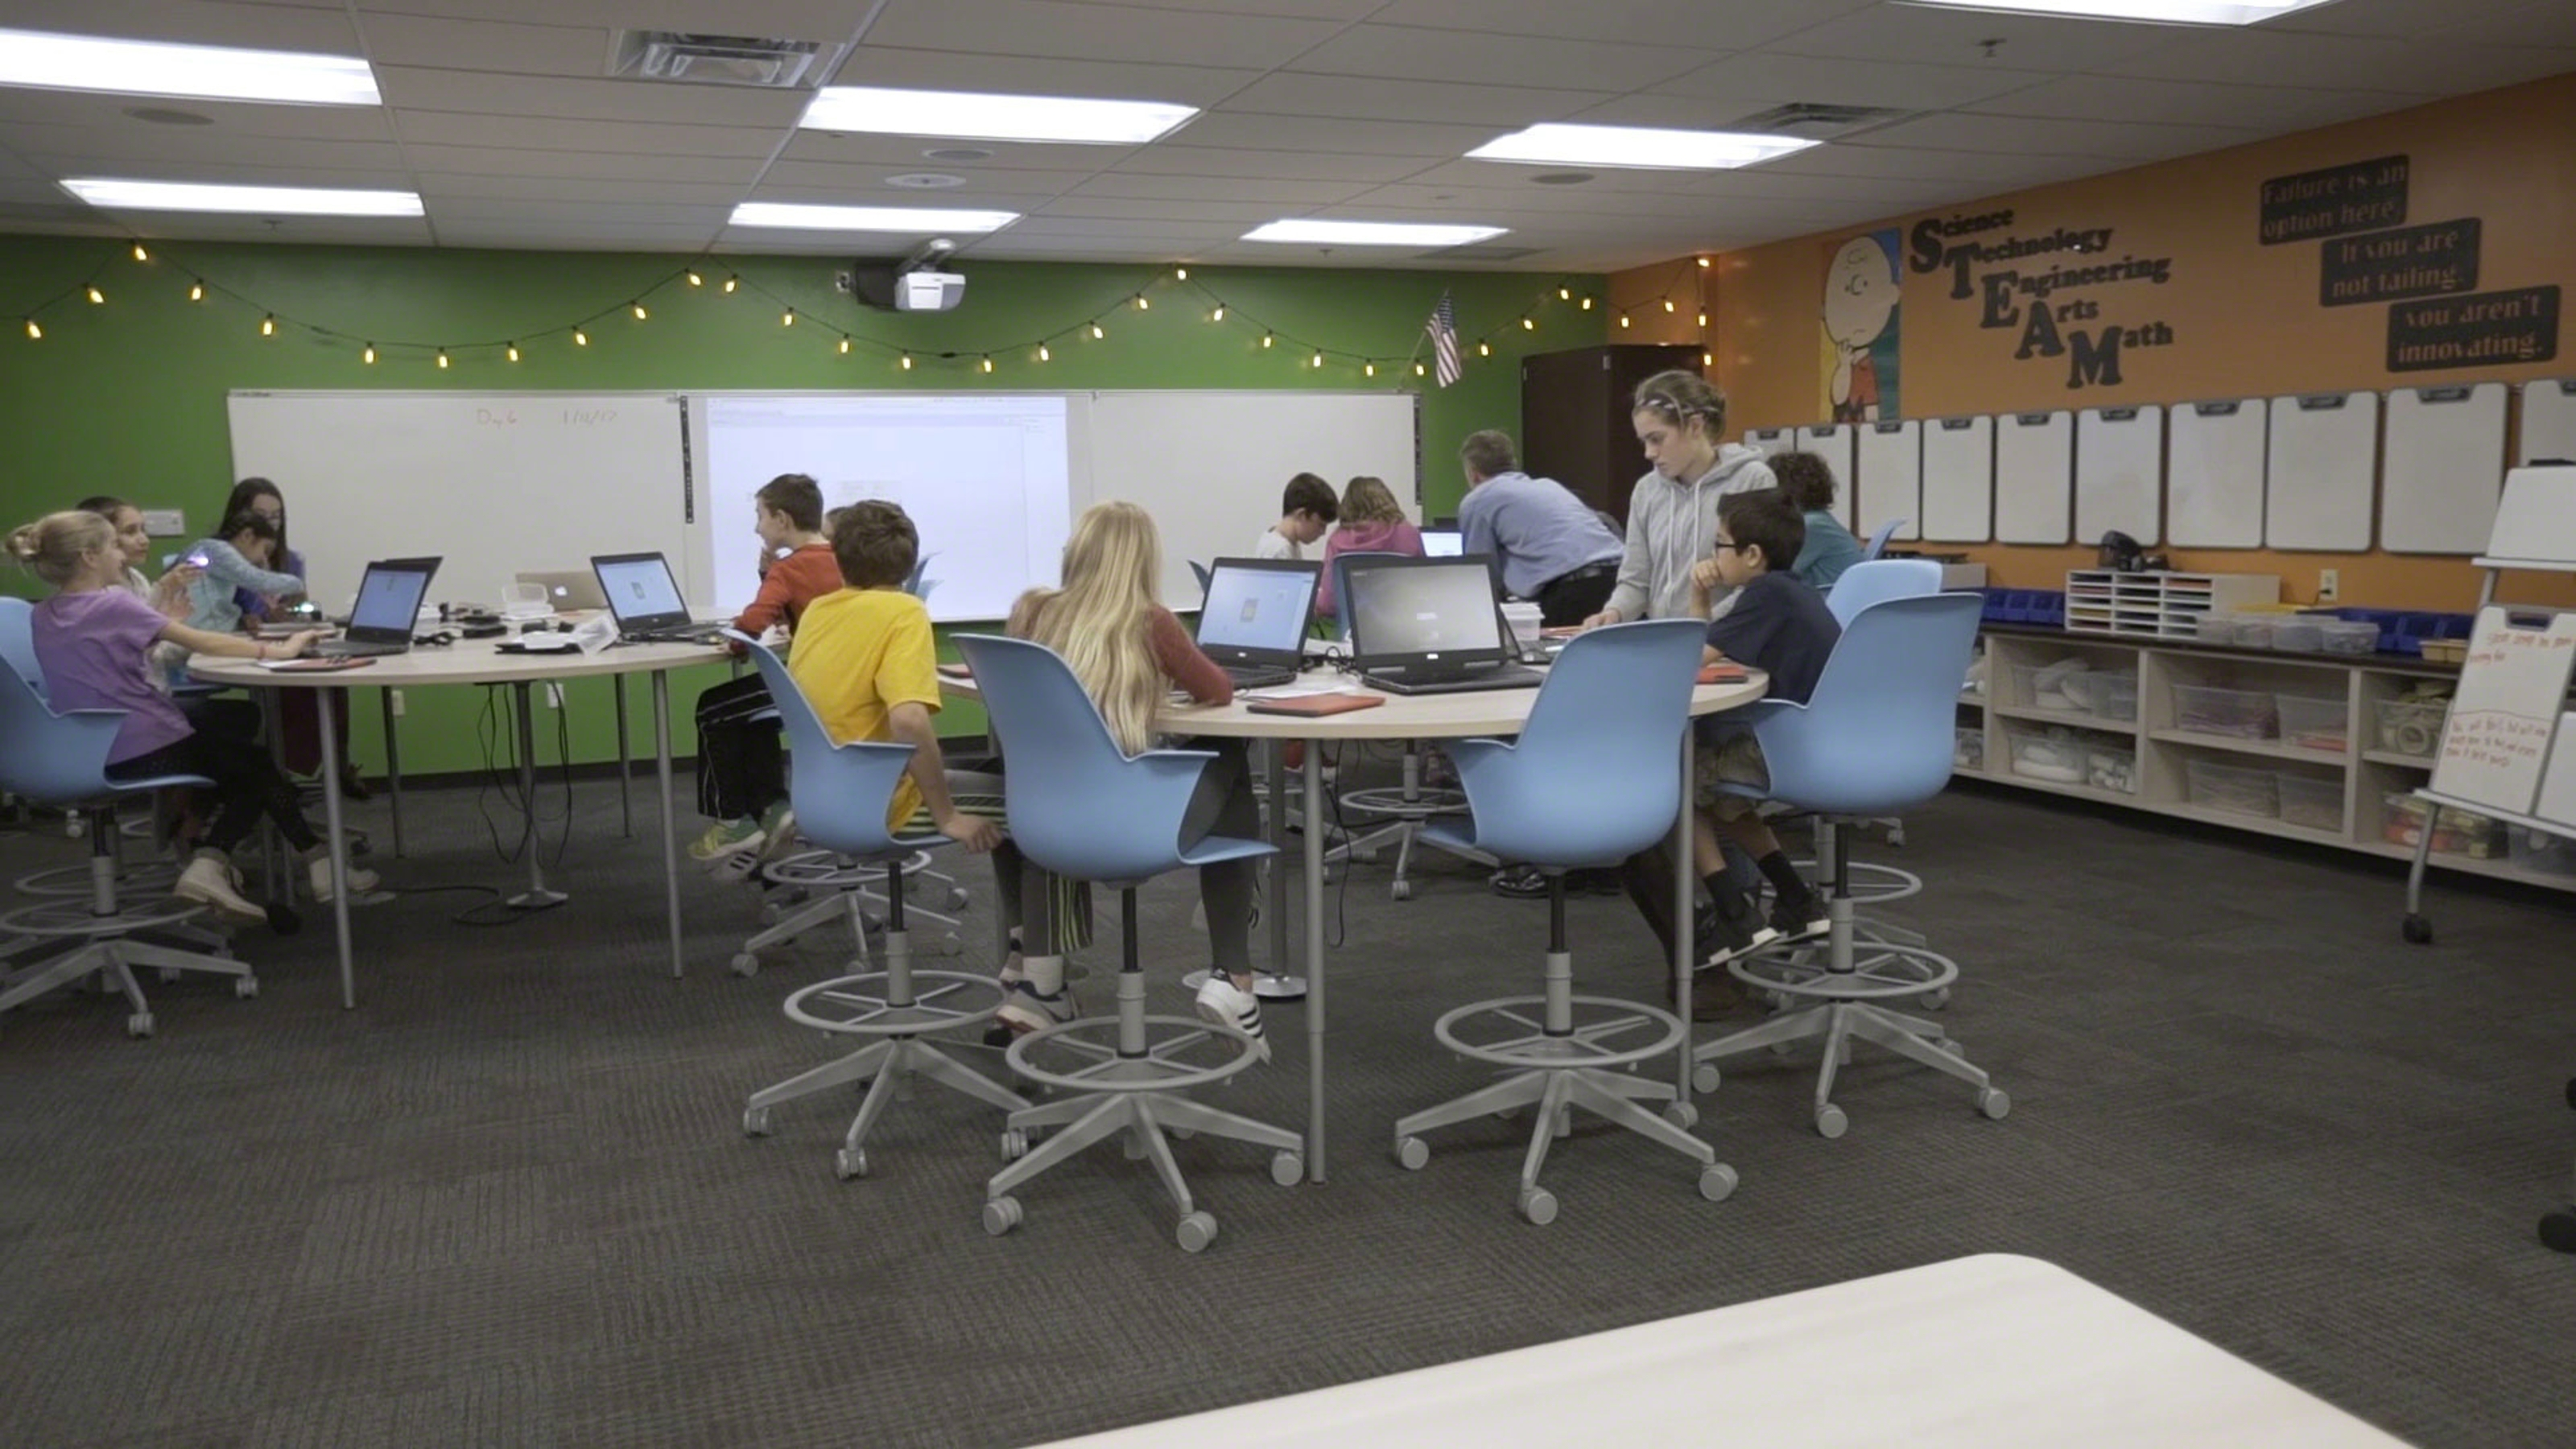 Classroom Furniture Grants ~ Award winning teacher motivates students with active learning